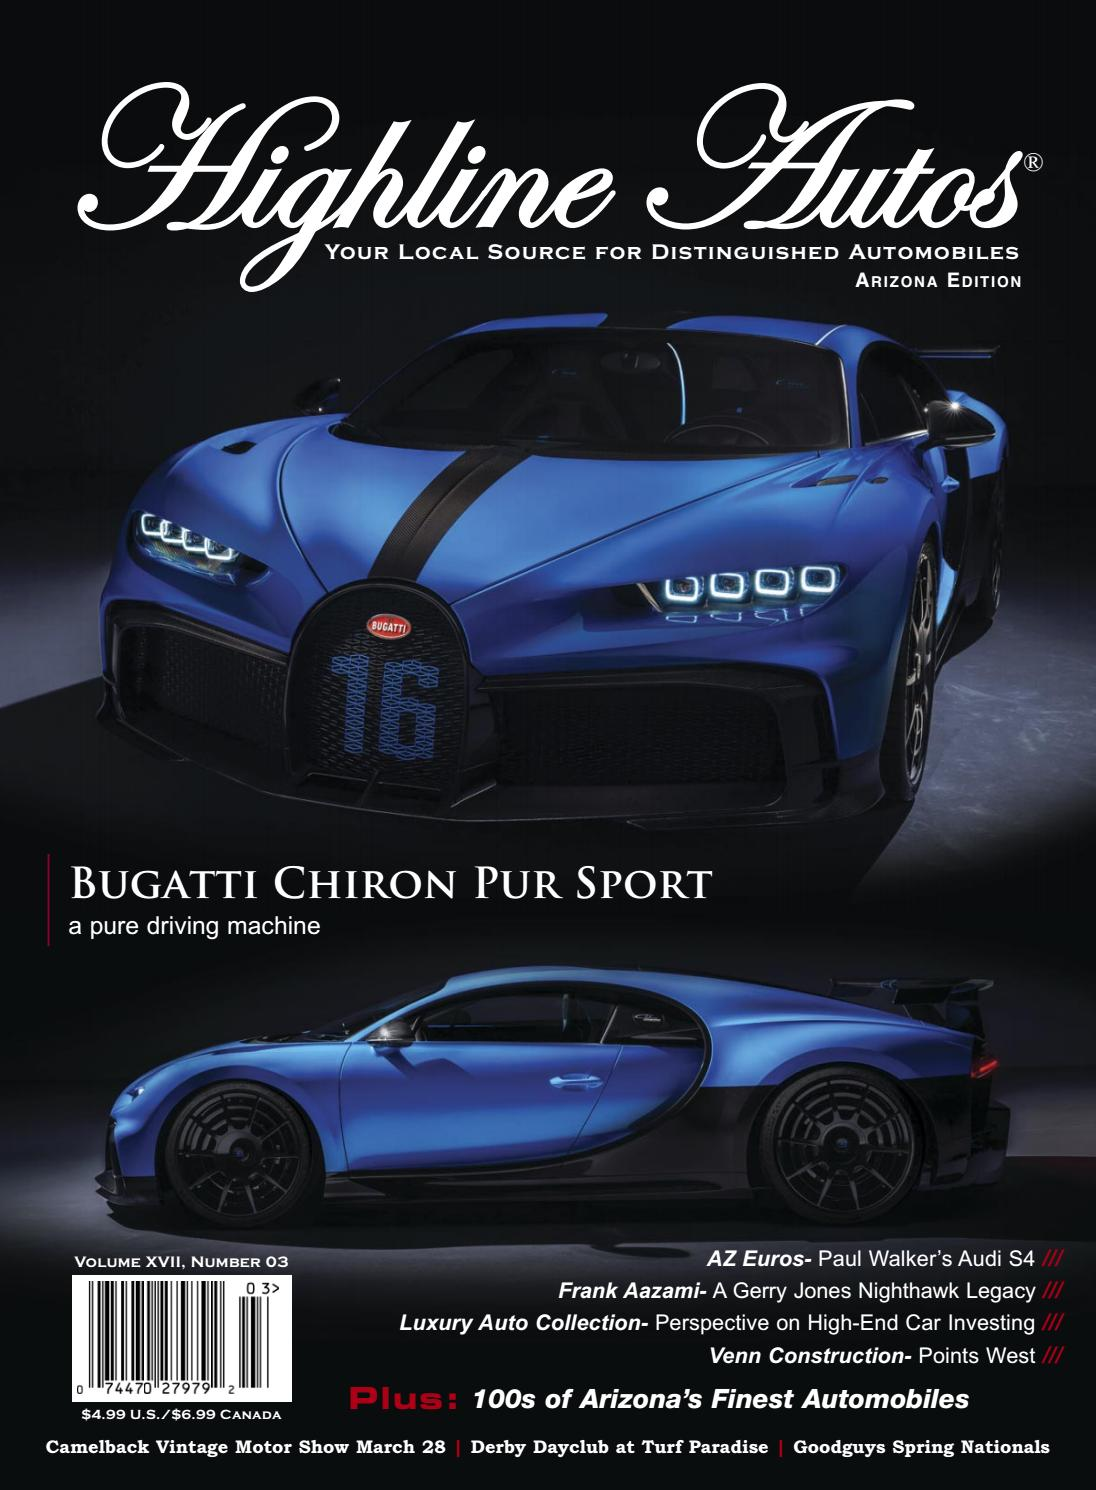 Highline Autos Volume Xvii Number 03 By Highline Autos Issuu